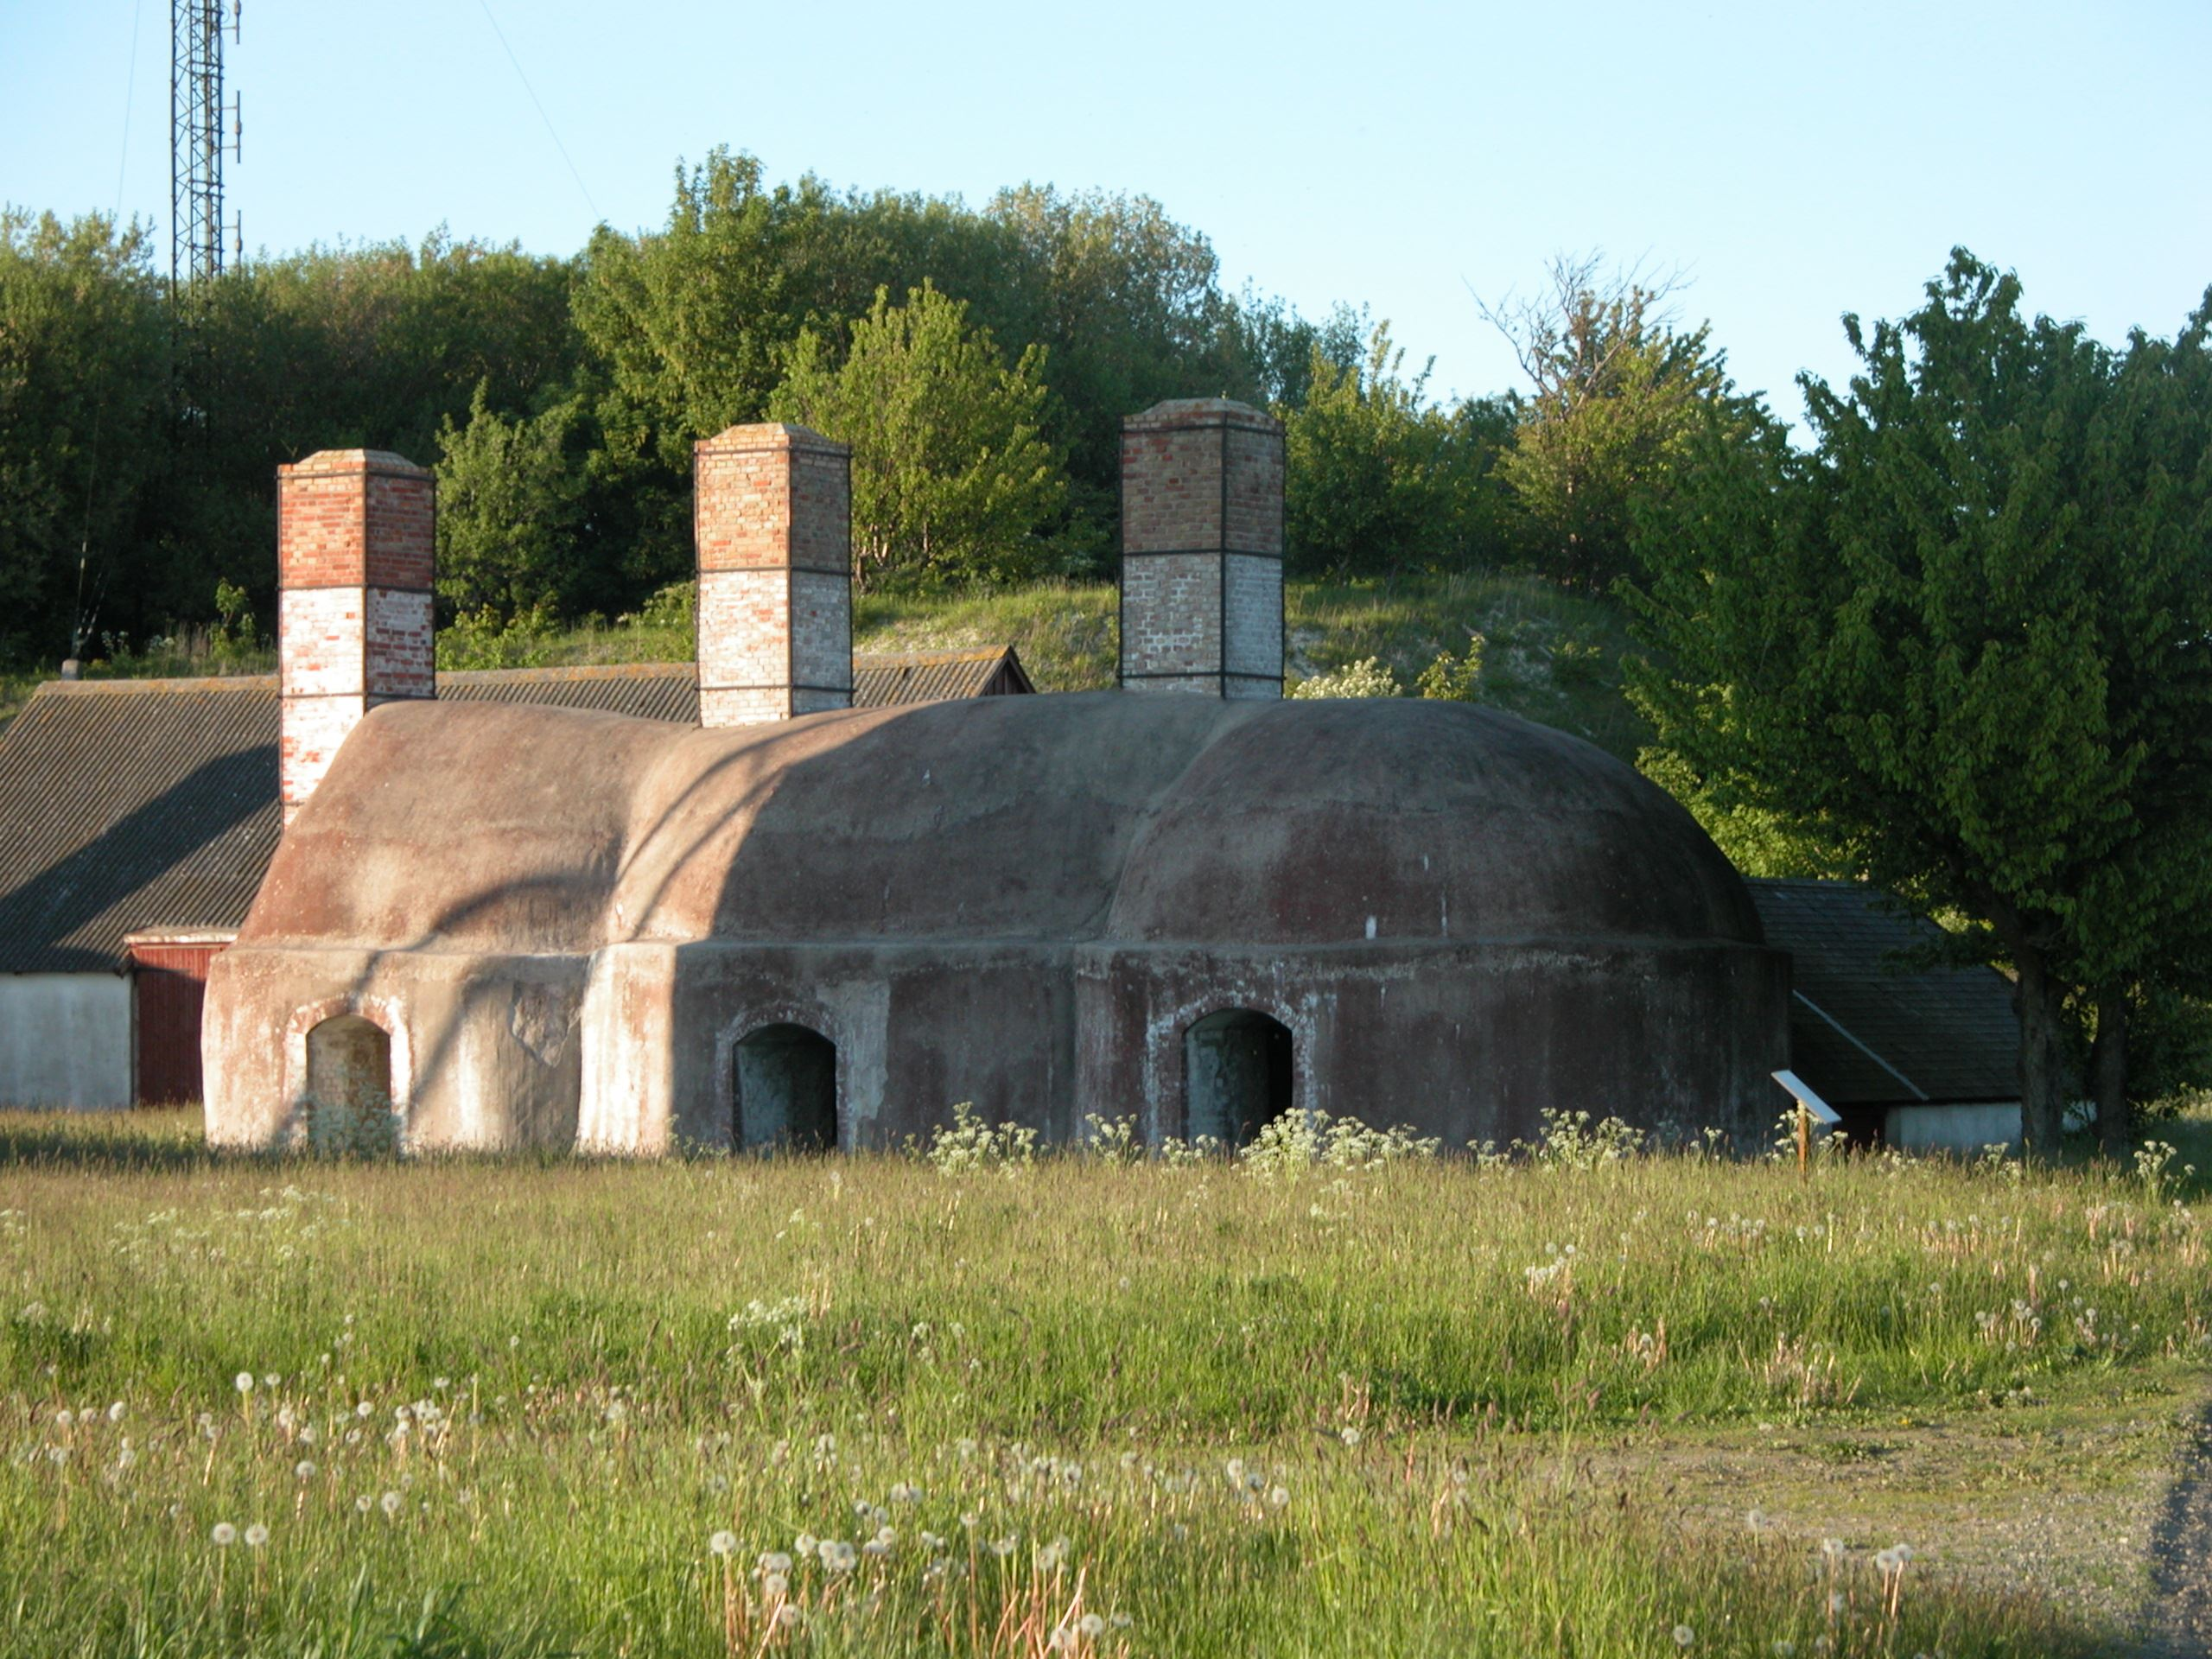 The Limestone Kilns